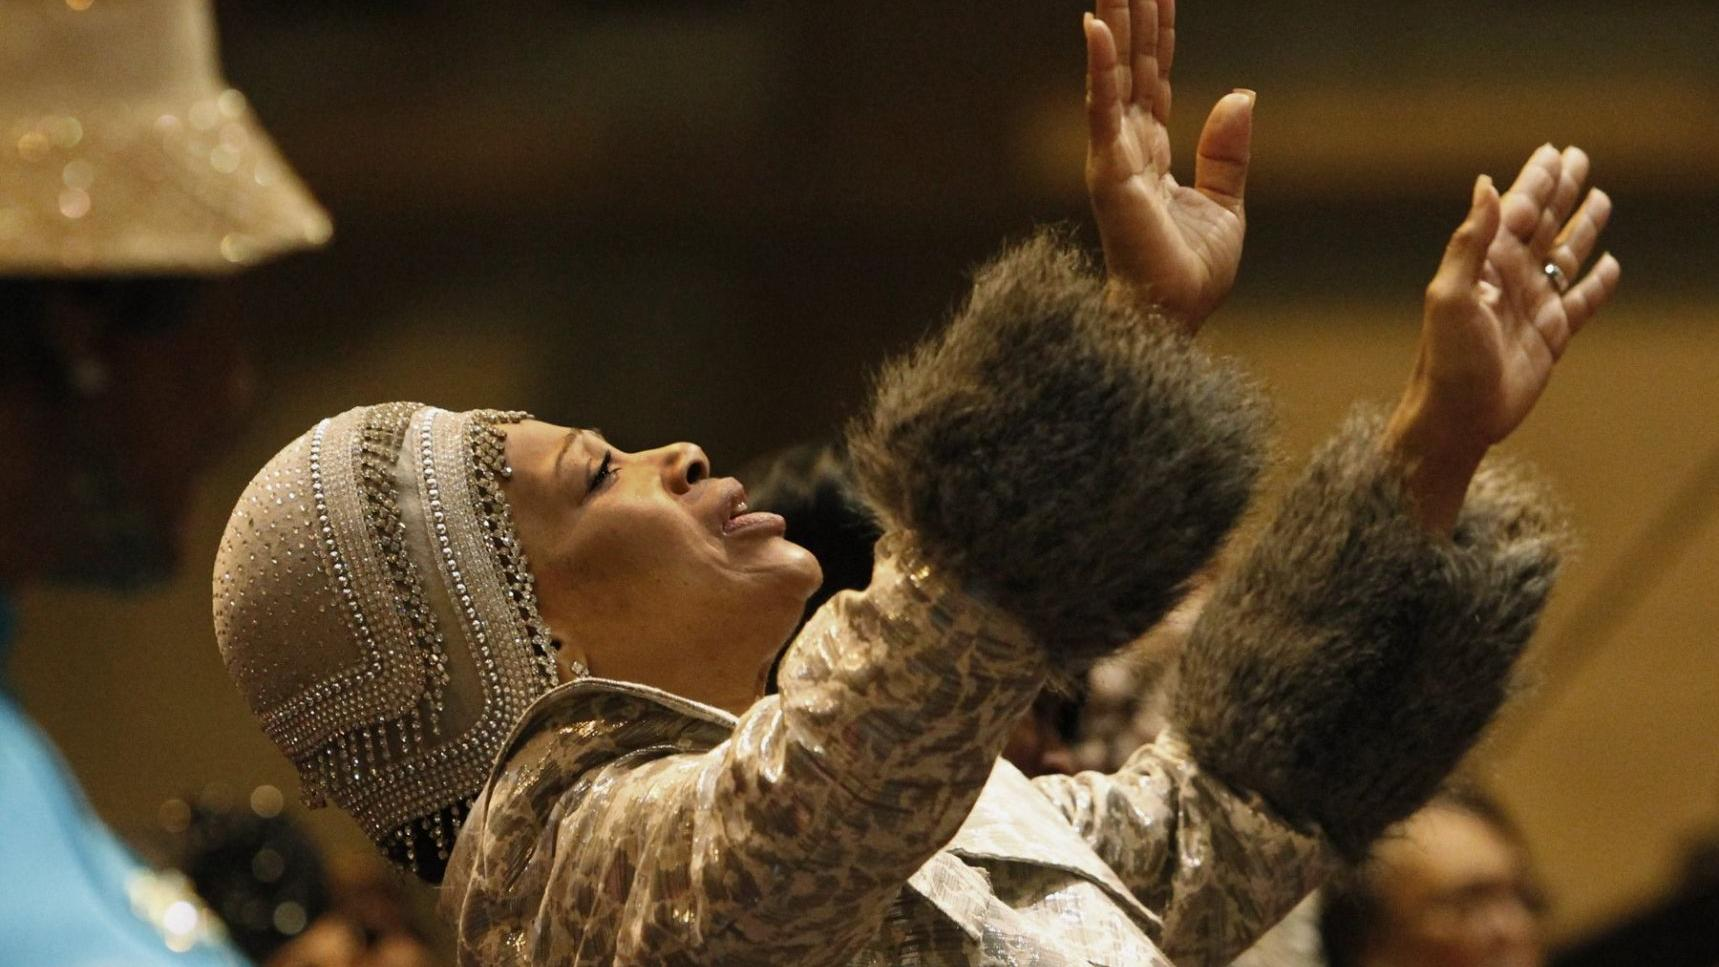 Thousands gather for annual Church of God in Christ conference in St. Louis